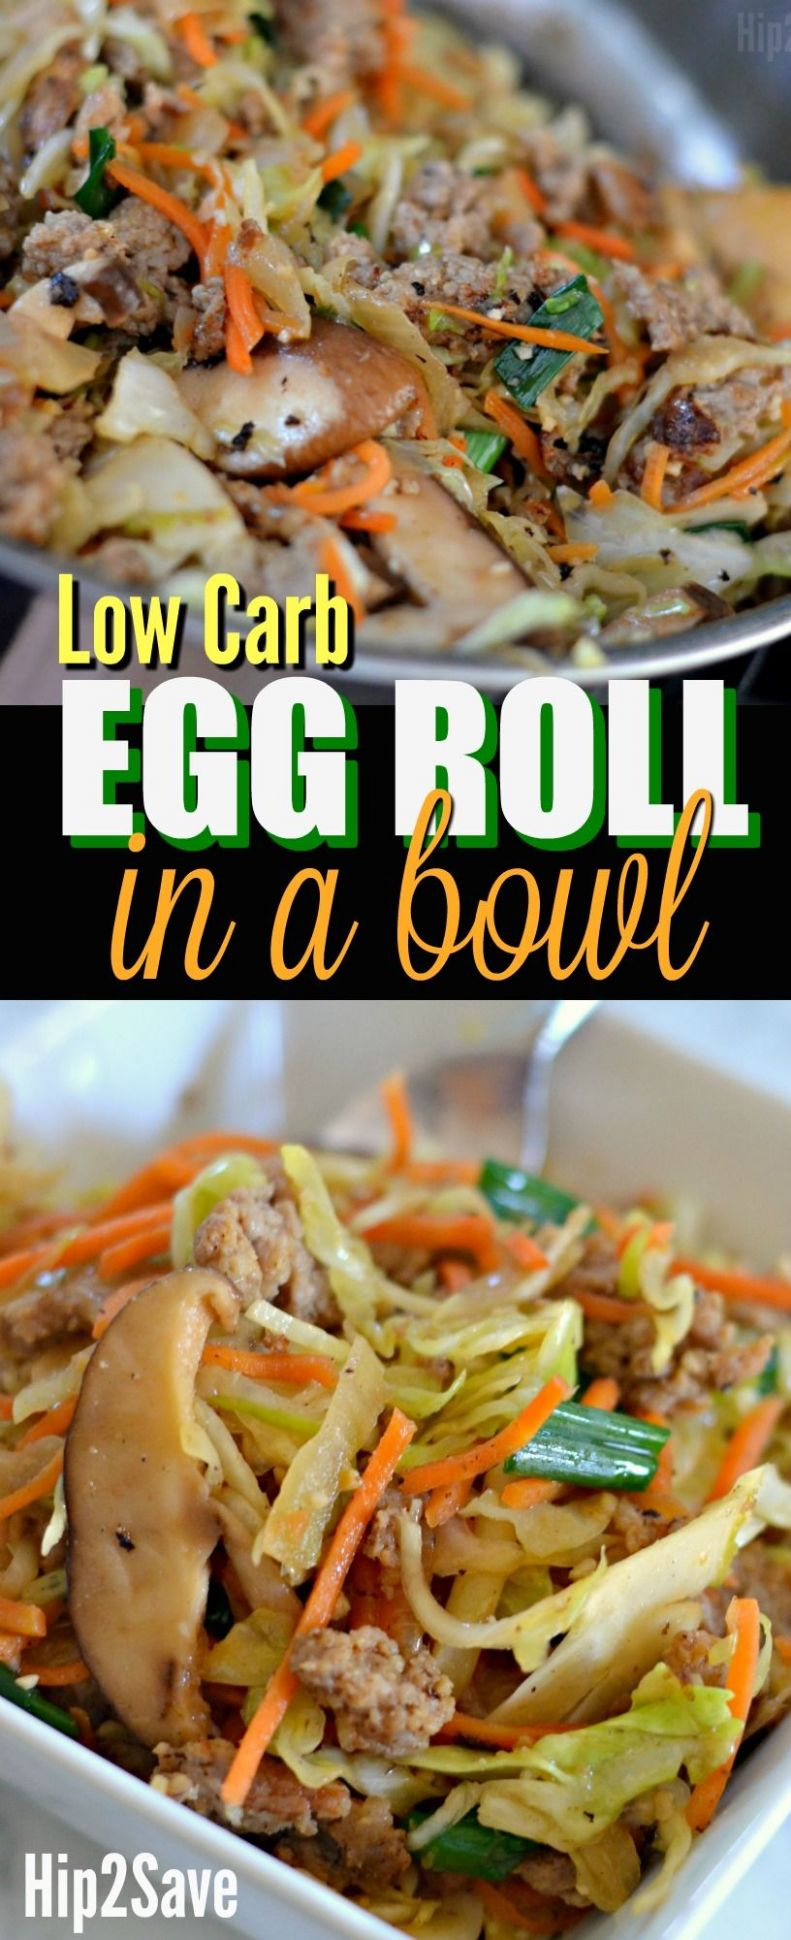 Low Carb Egg Roll in a Bowl - Healthy Recipes No Carbs